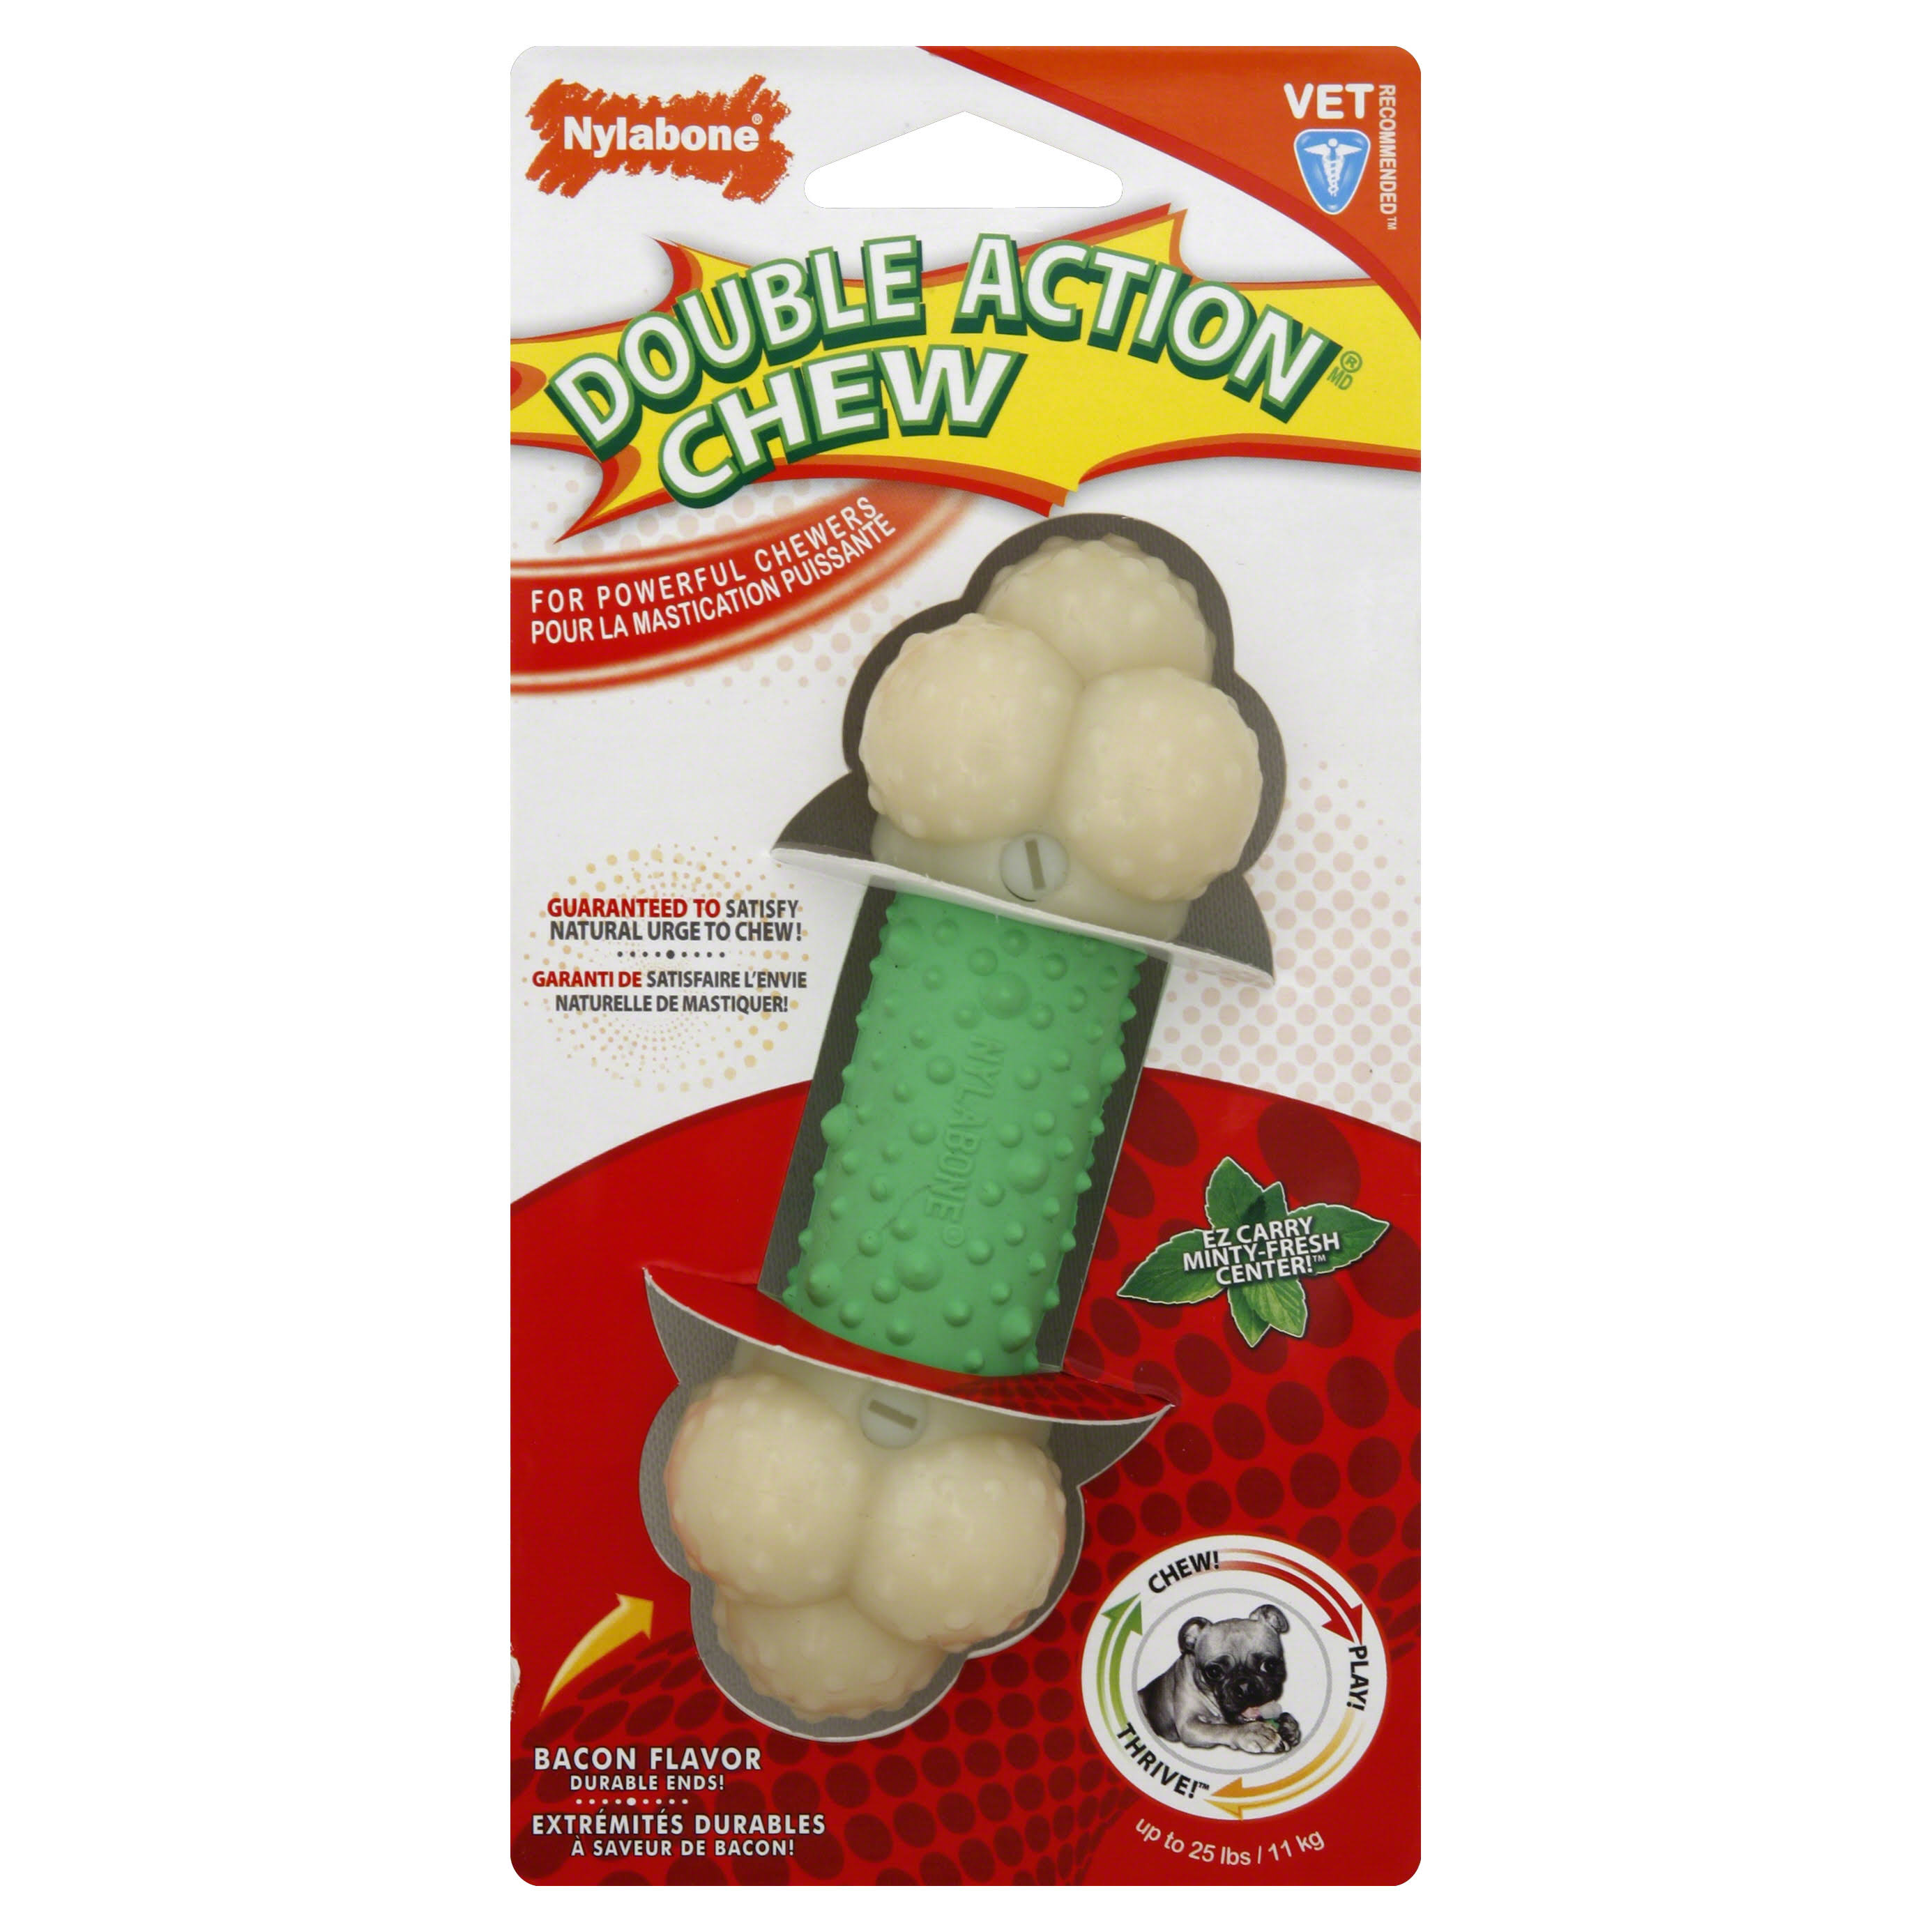 Nylabone Double Action Chew Dog Toy - Medium